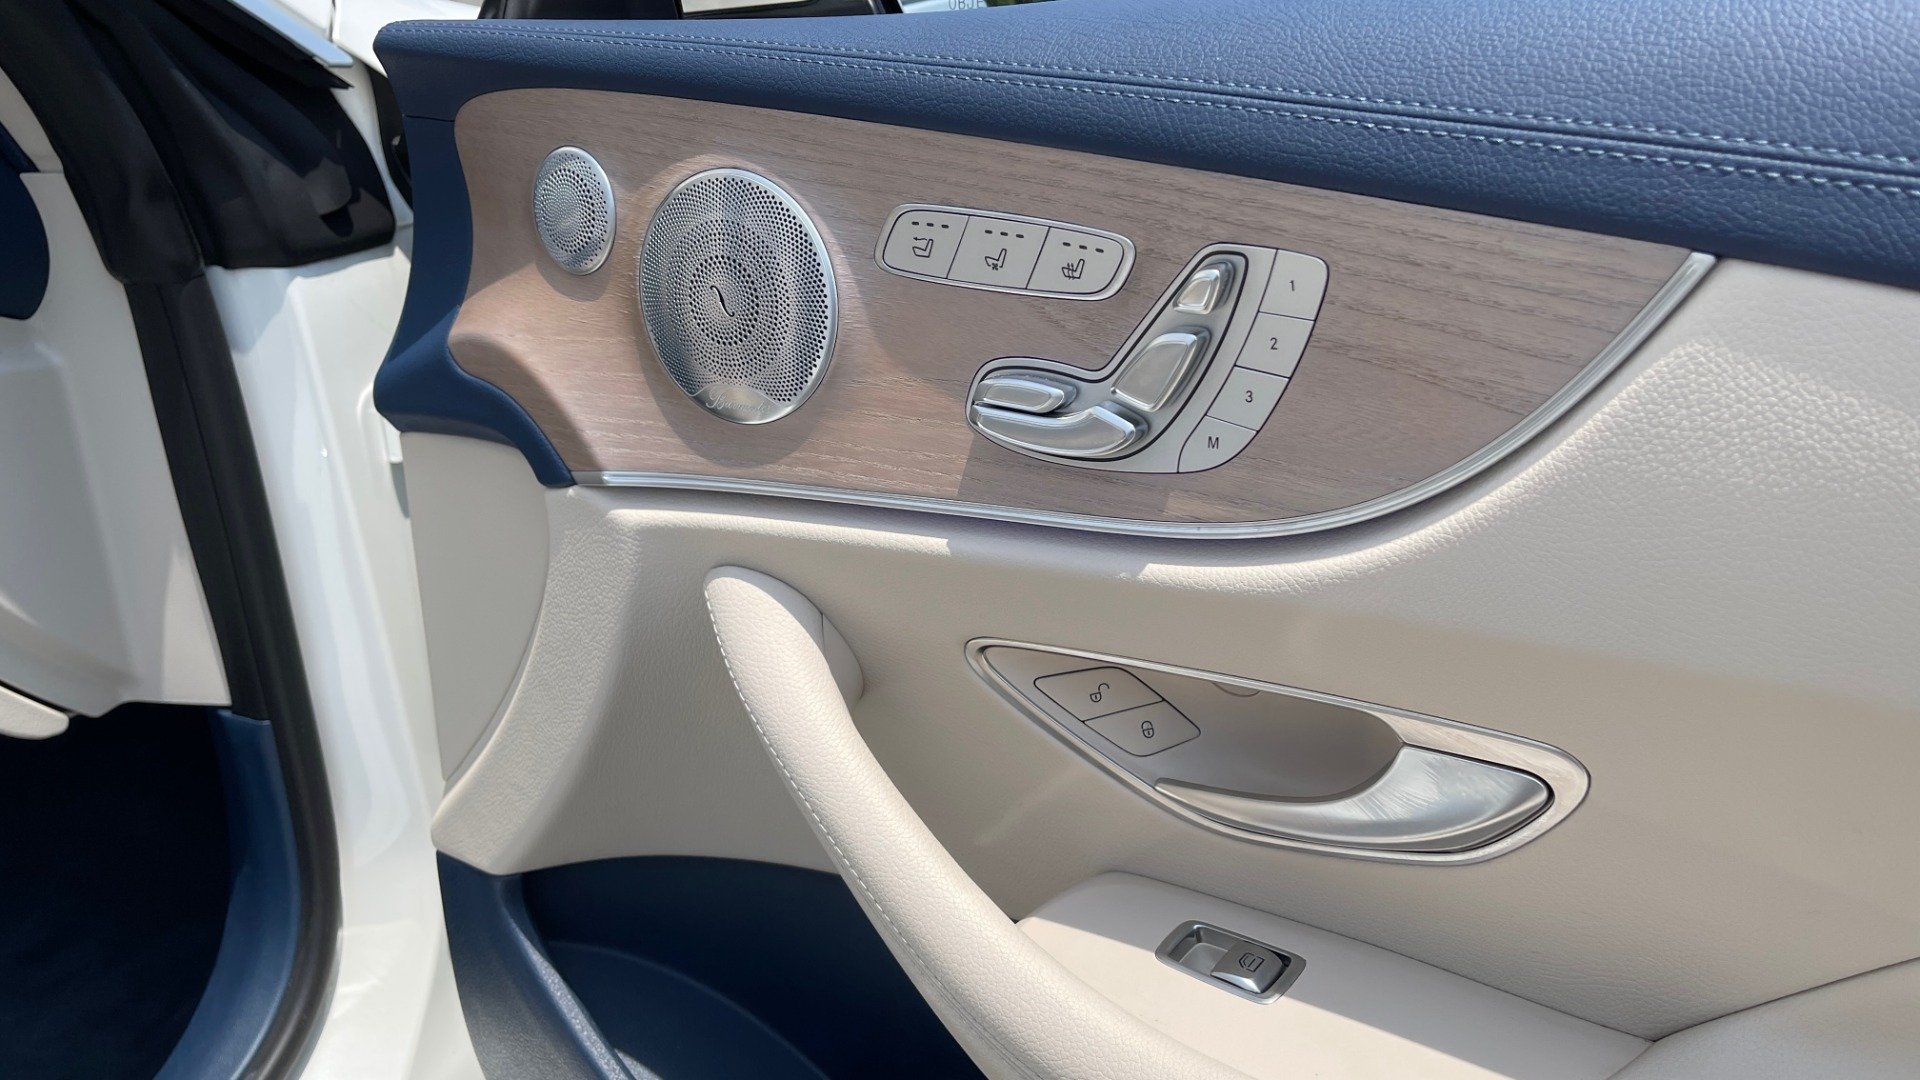 Used 2018 Mercedes-Benz E-CLASS E 400 CABRIOLET / PREM PKG / AMG LINE / NAV / REARVIEW for sale Sold at Formula Imports in Charlotte NC 28227 40